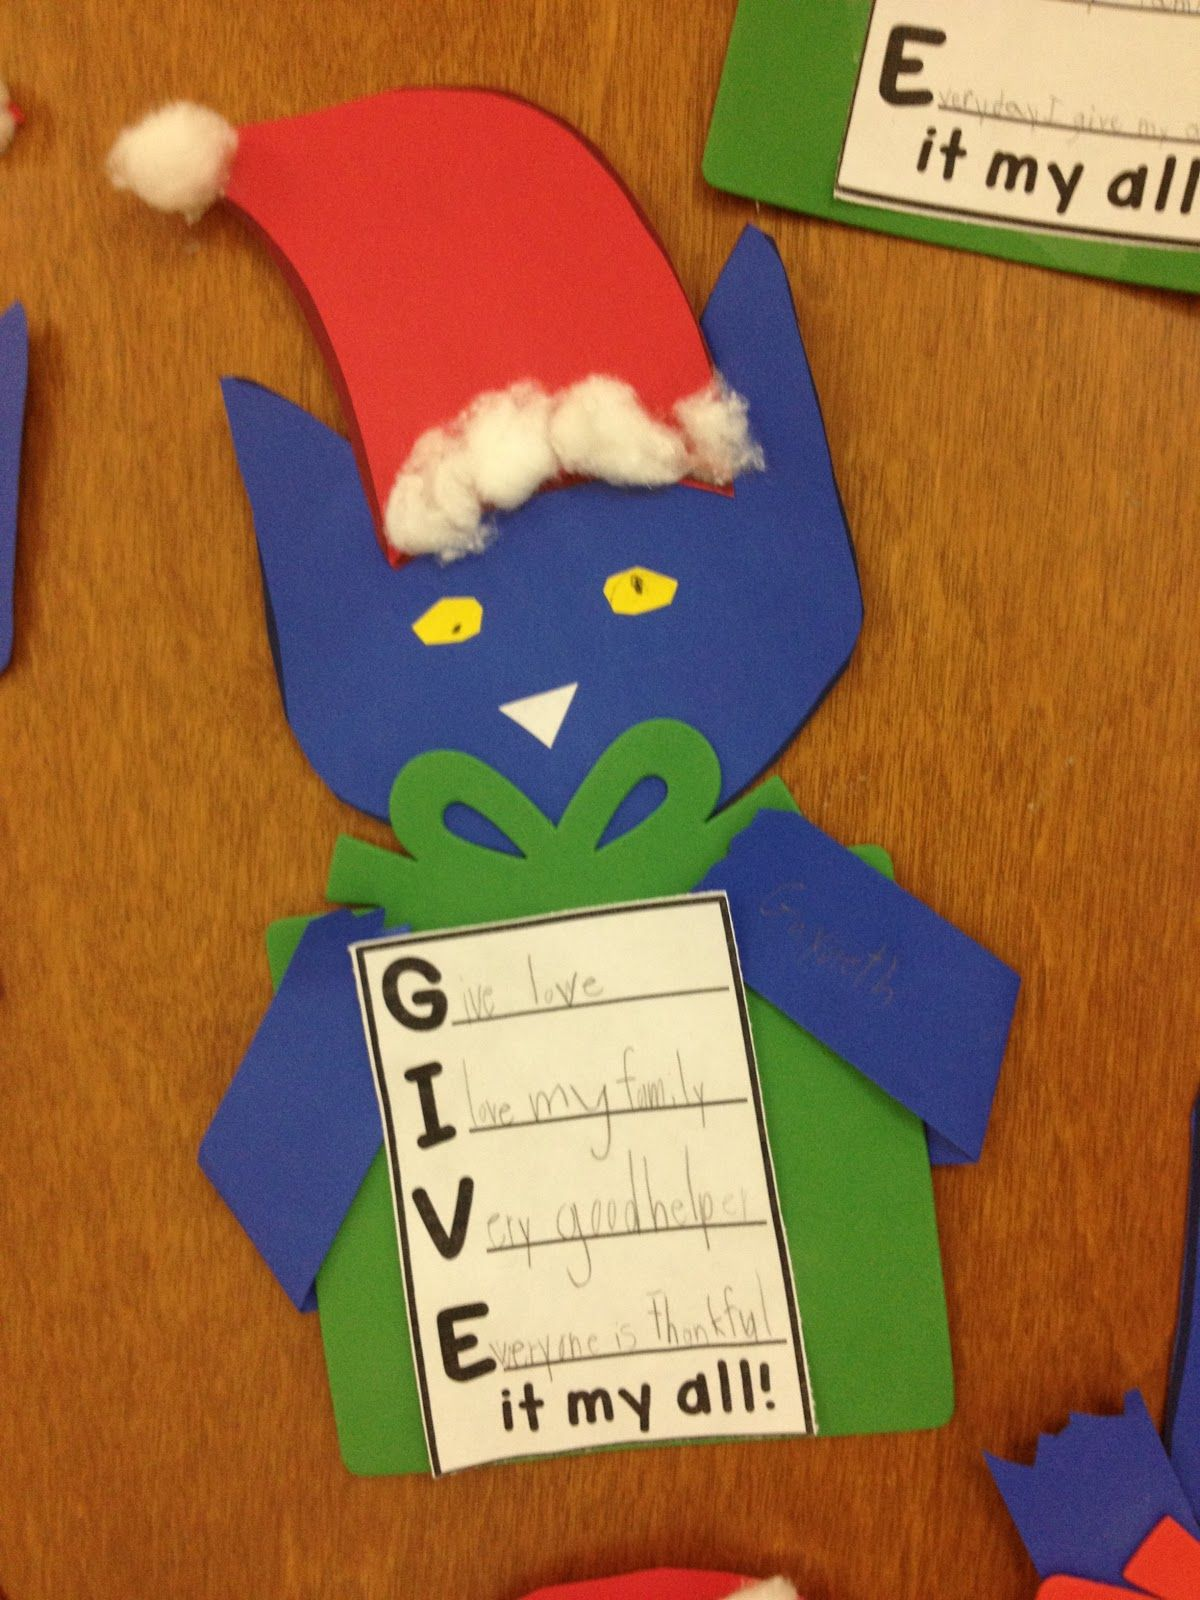 Tattling To The Teacher To Go Along With Pete The Cat Saves